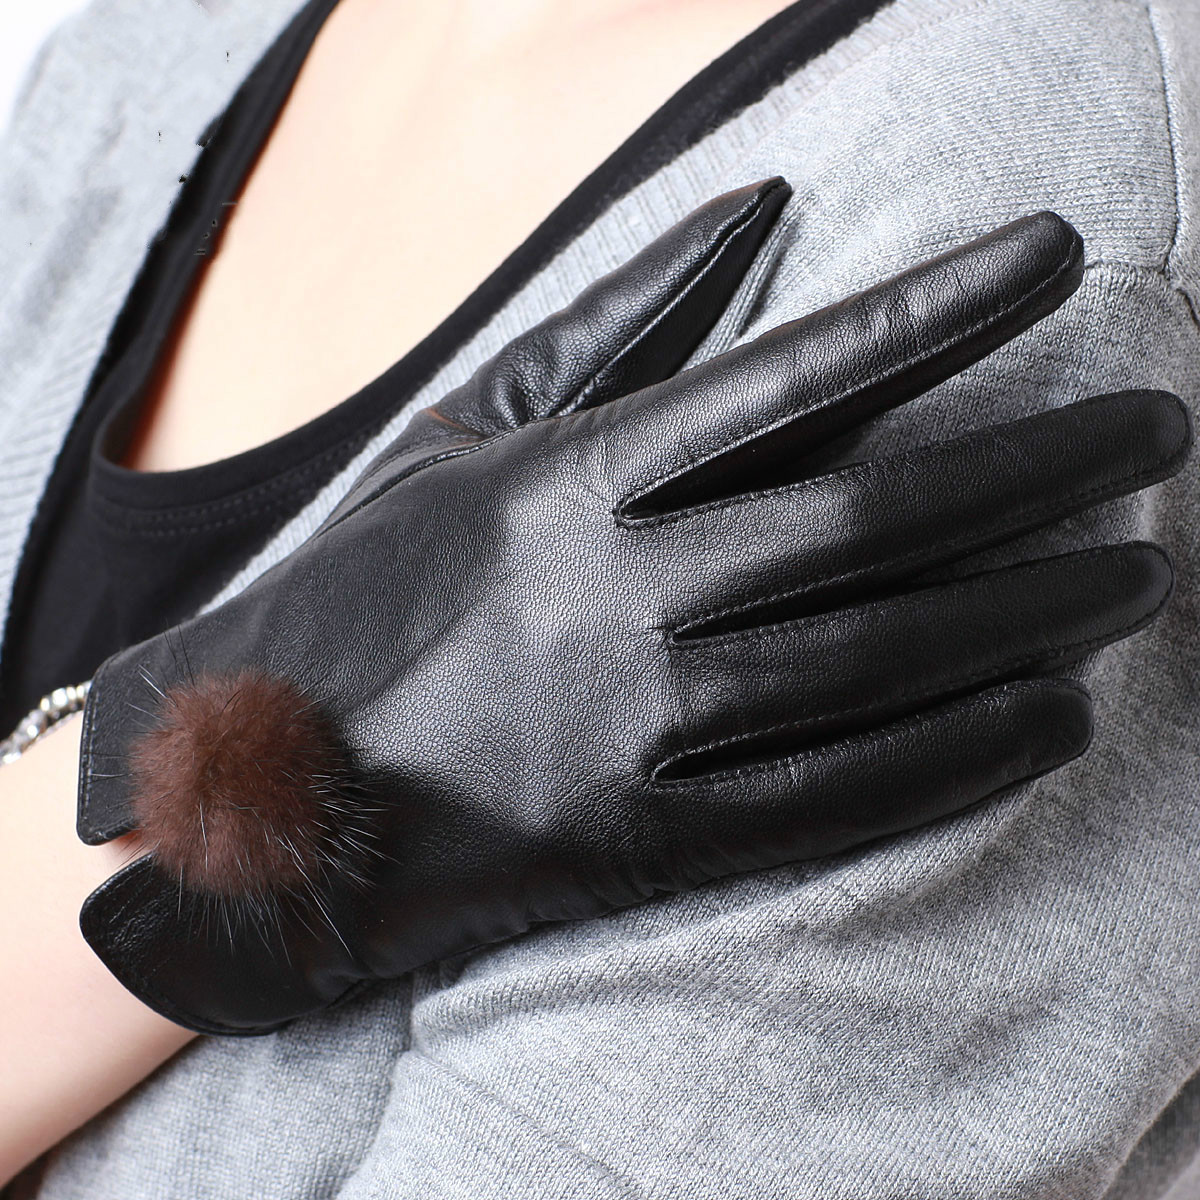 High quality womens leather gloves - Fashion Winter Women Black Brown Genuine Leather Gloves Sheepskin Gloves Warm Lady Leather Gloves Outdoor Sports